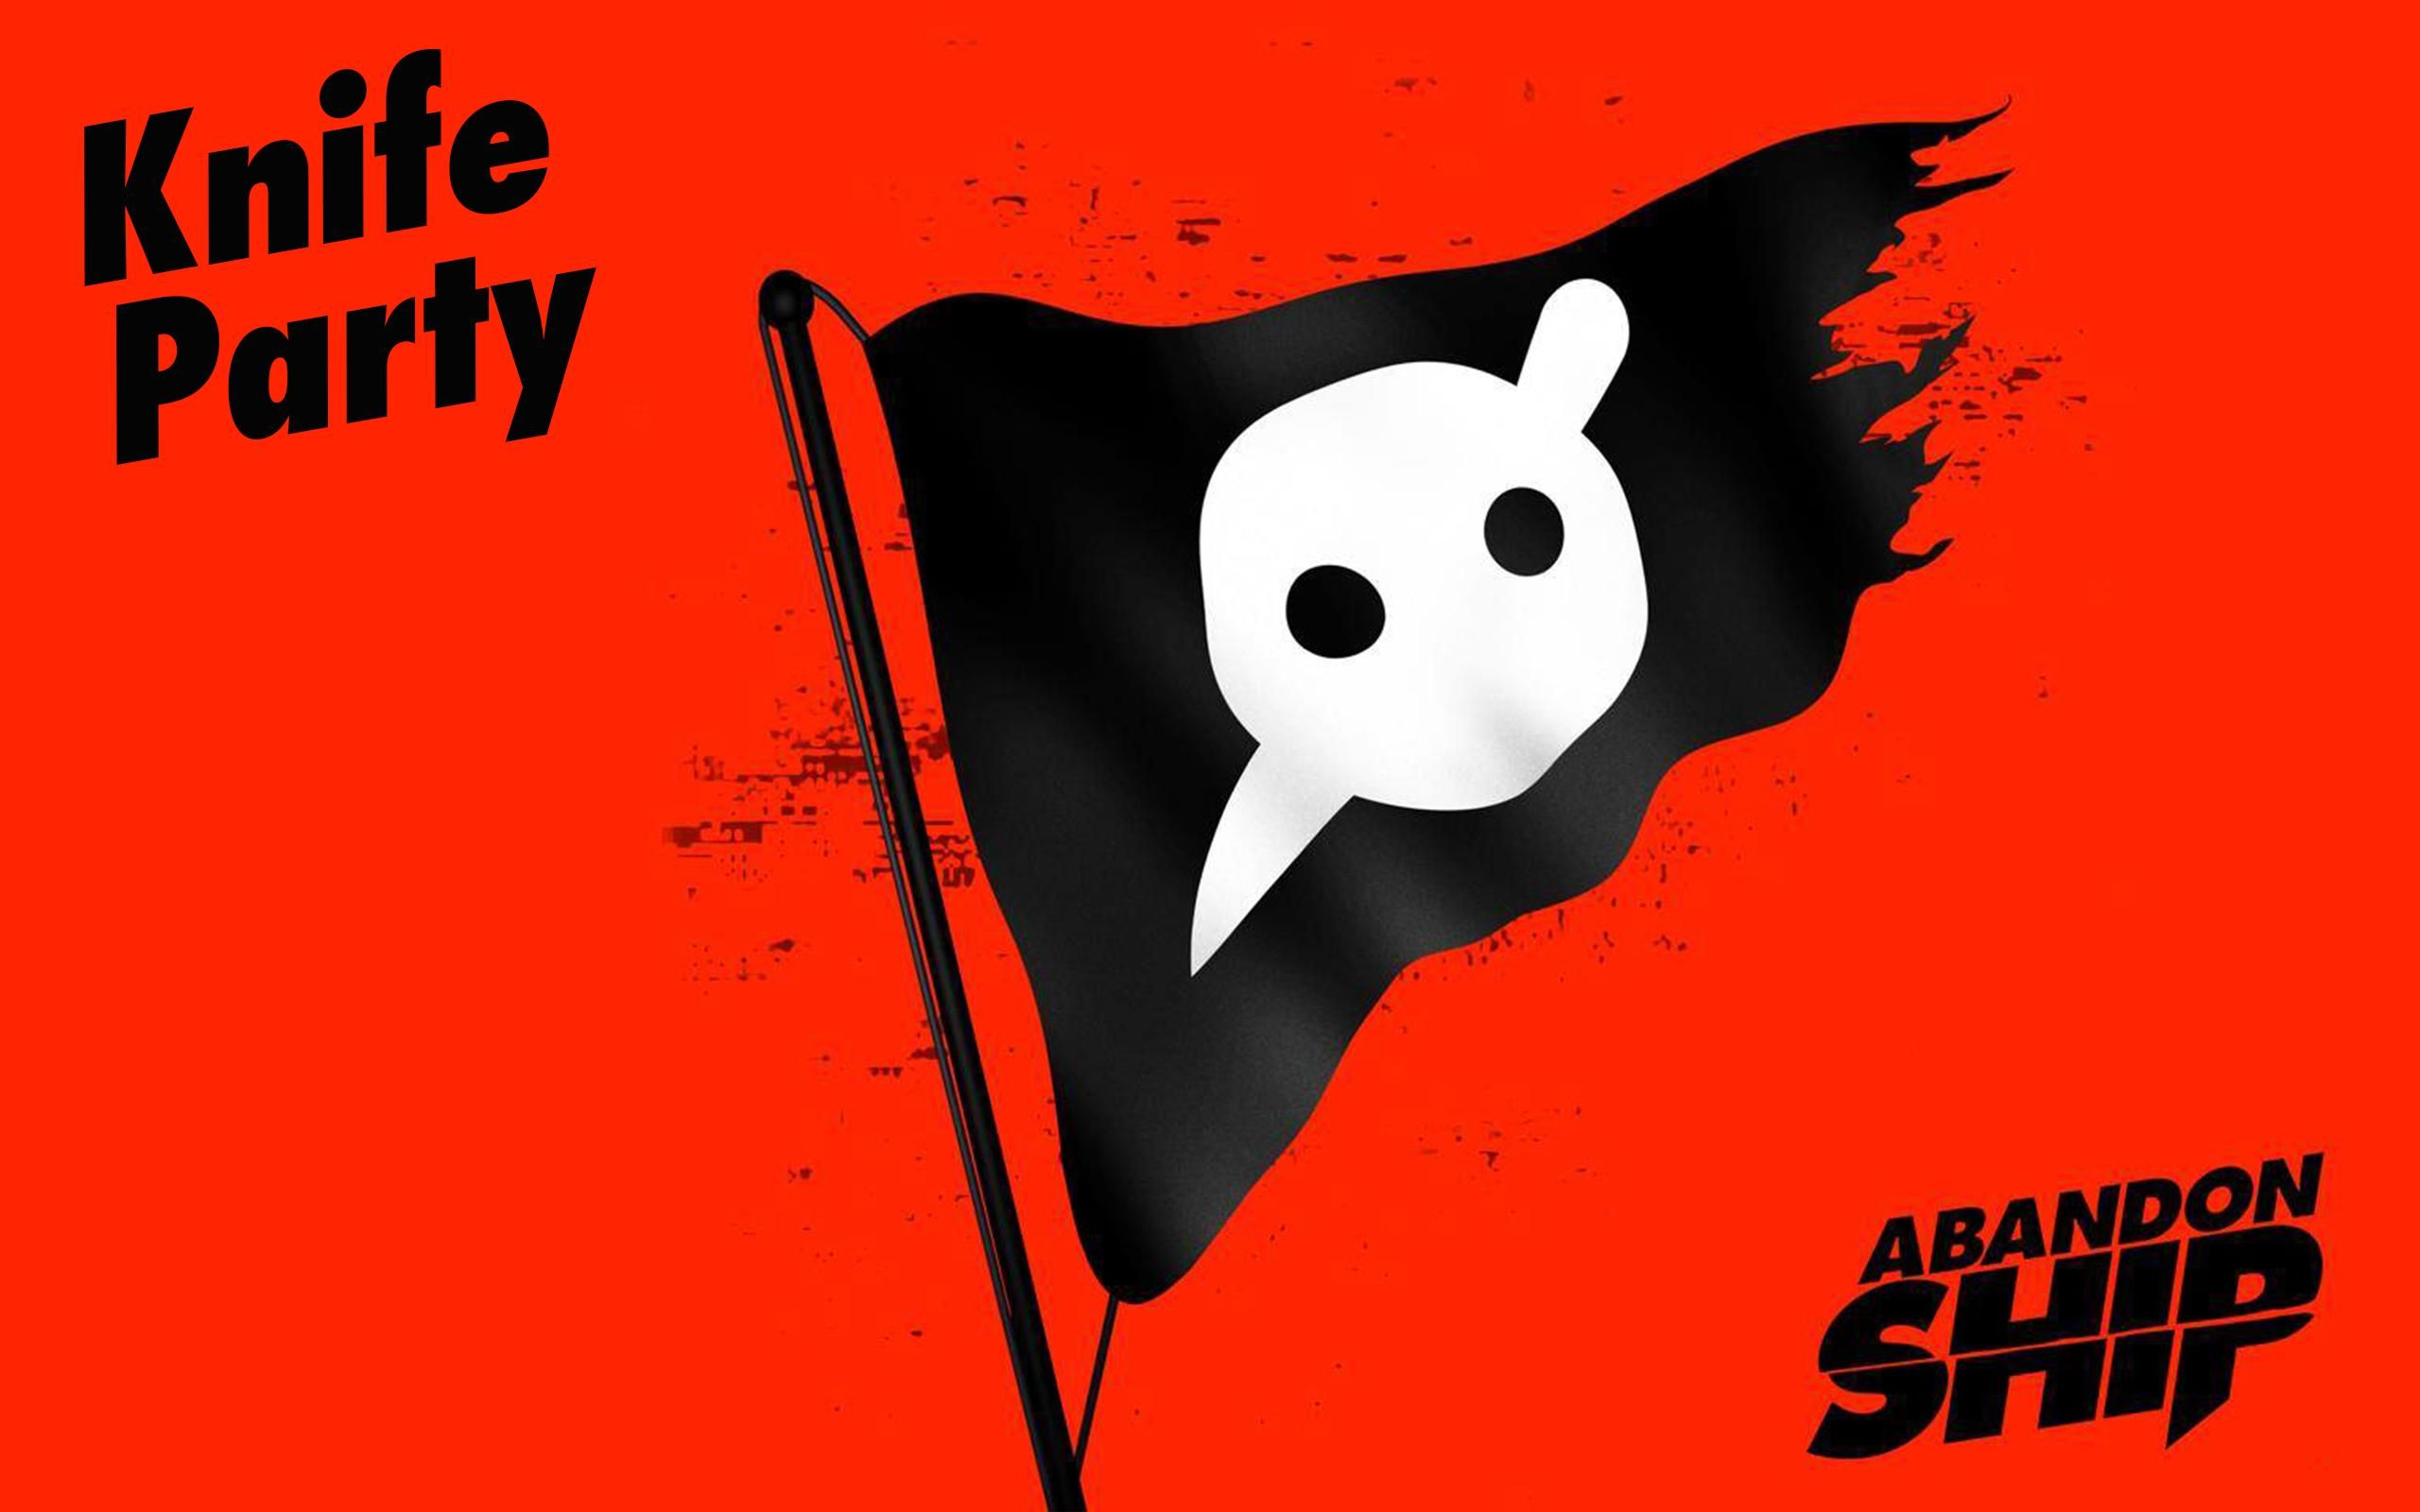 Iphone 6 Music Knife Party Logo Haunted House Wallpaper Id 163810 Knife Party Abandoned Ships Party Logo